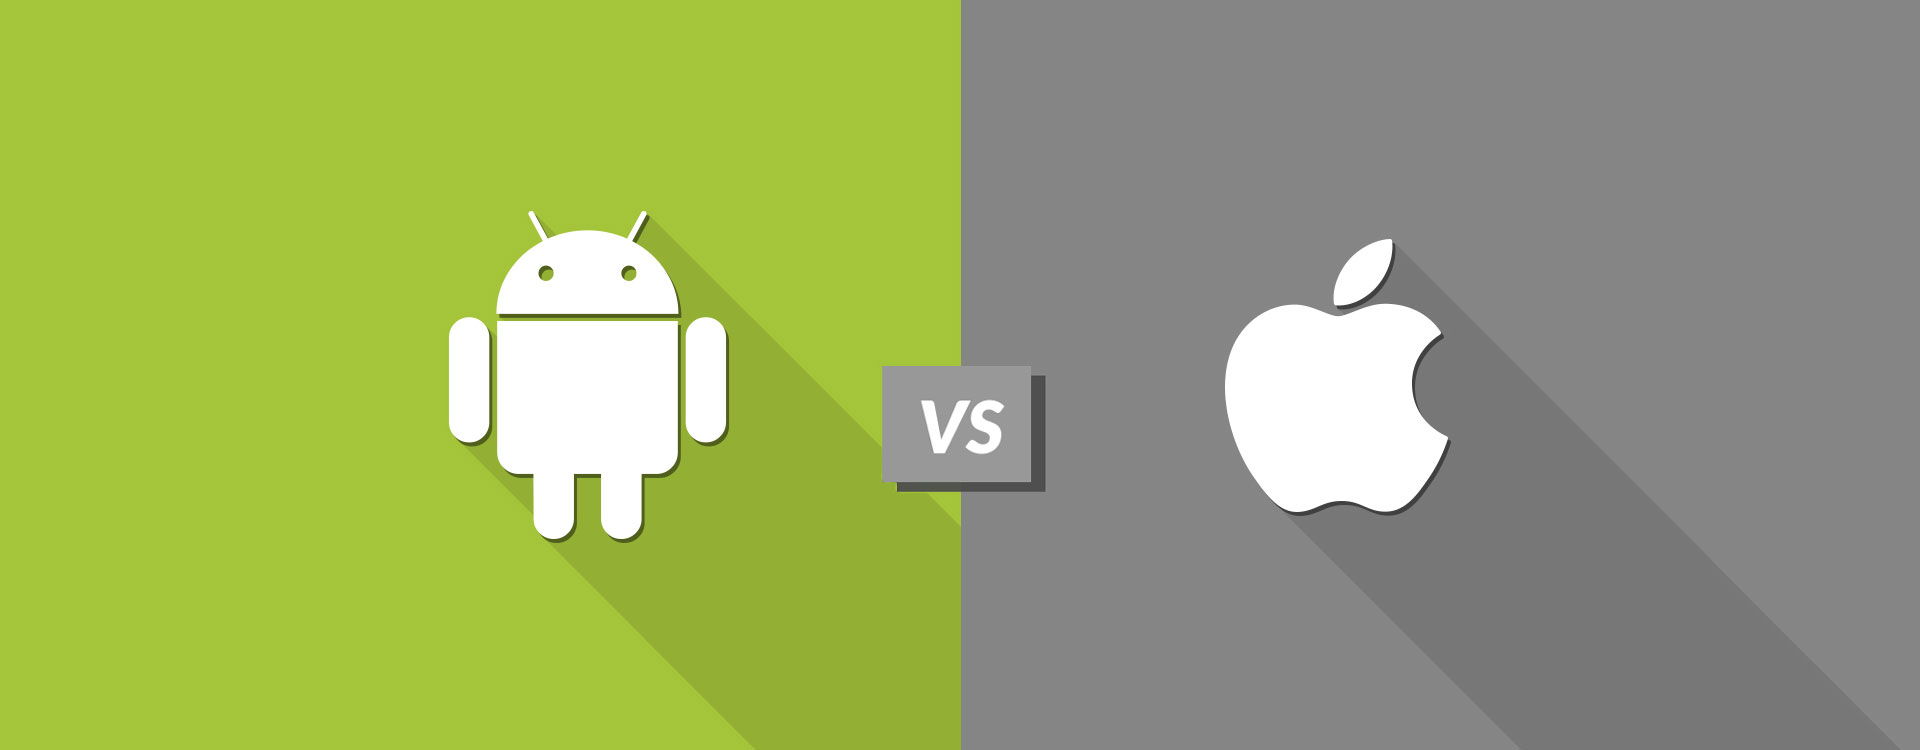 How Much Does it Cost to Make an IOS or Android App?